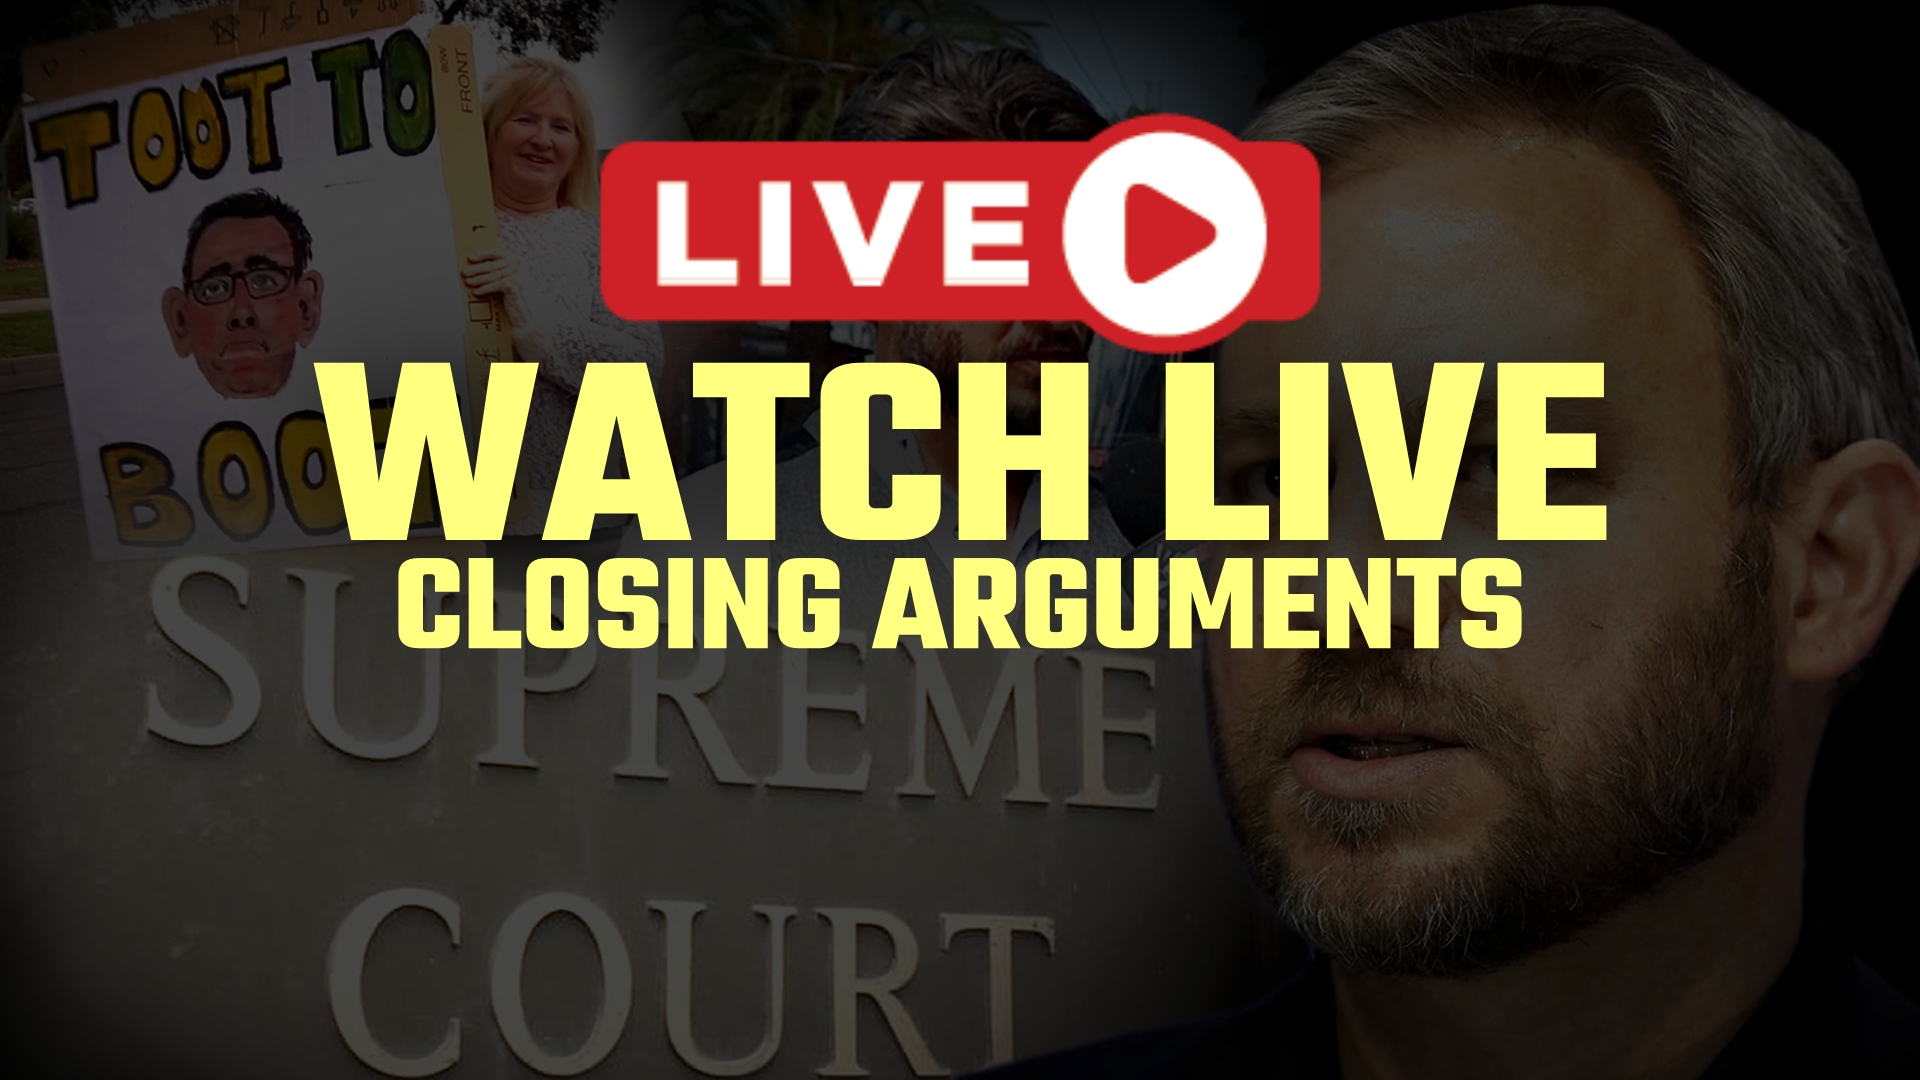 WATCH NOW: Closing arguments in our Supreme Court constitutional challenge